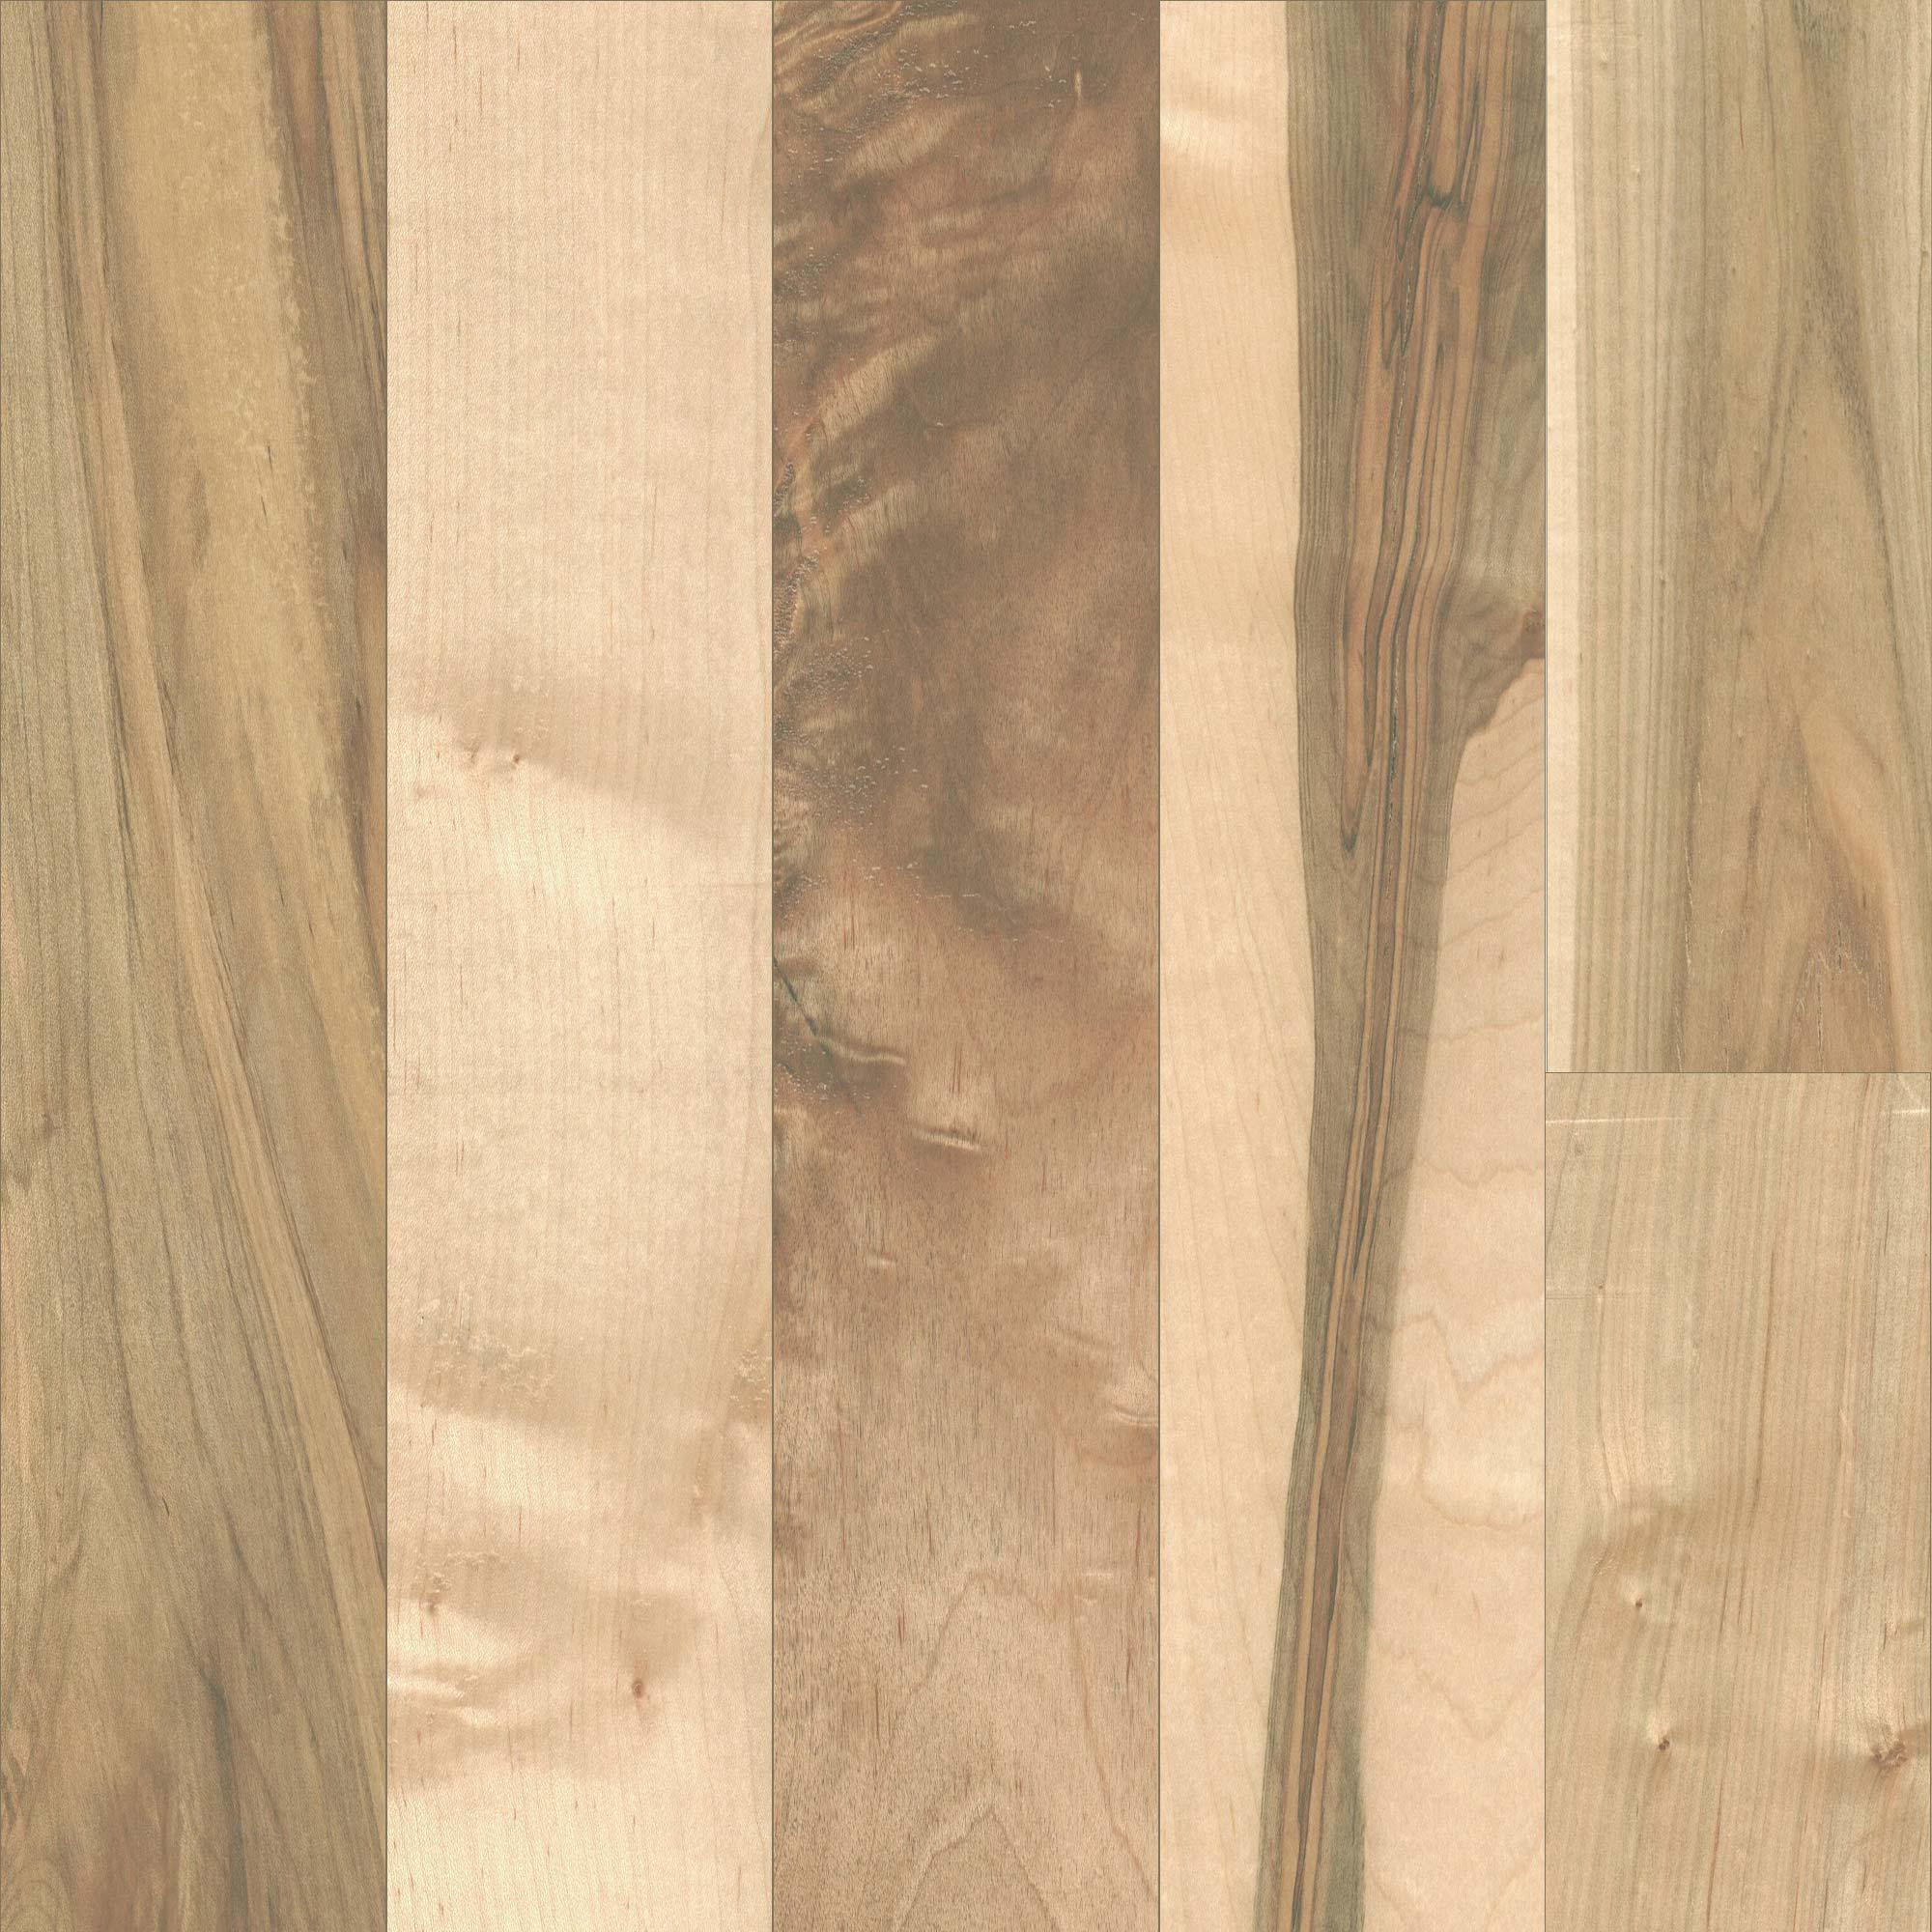 2 1 4 Maple Hardwood Flooring Of Kingsmill Natural Maple 4 Wide 3 4 solid Hardwood Flooring with Regard to Natural Maple M Unat4 4 X 36 Approved